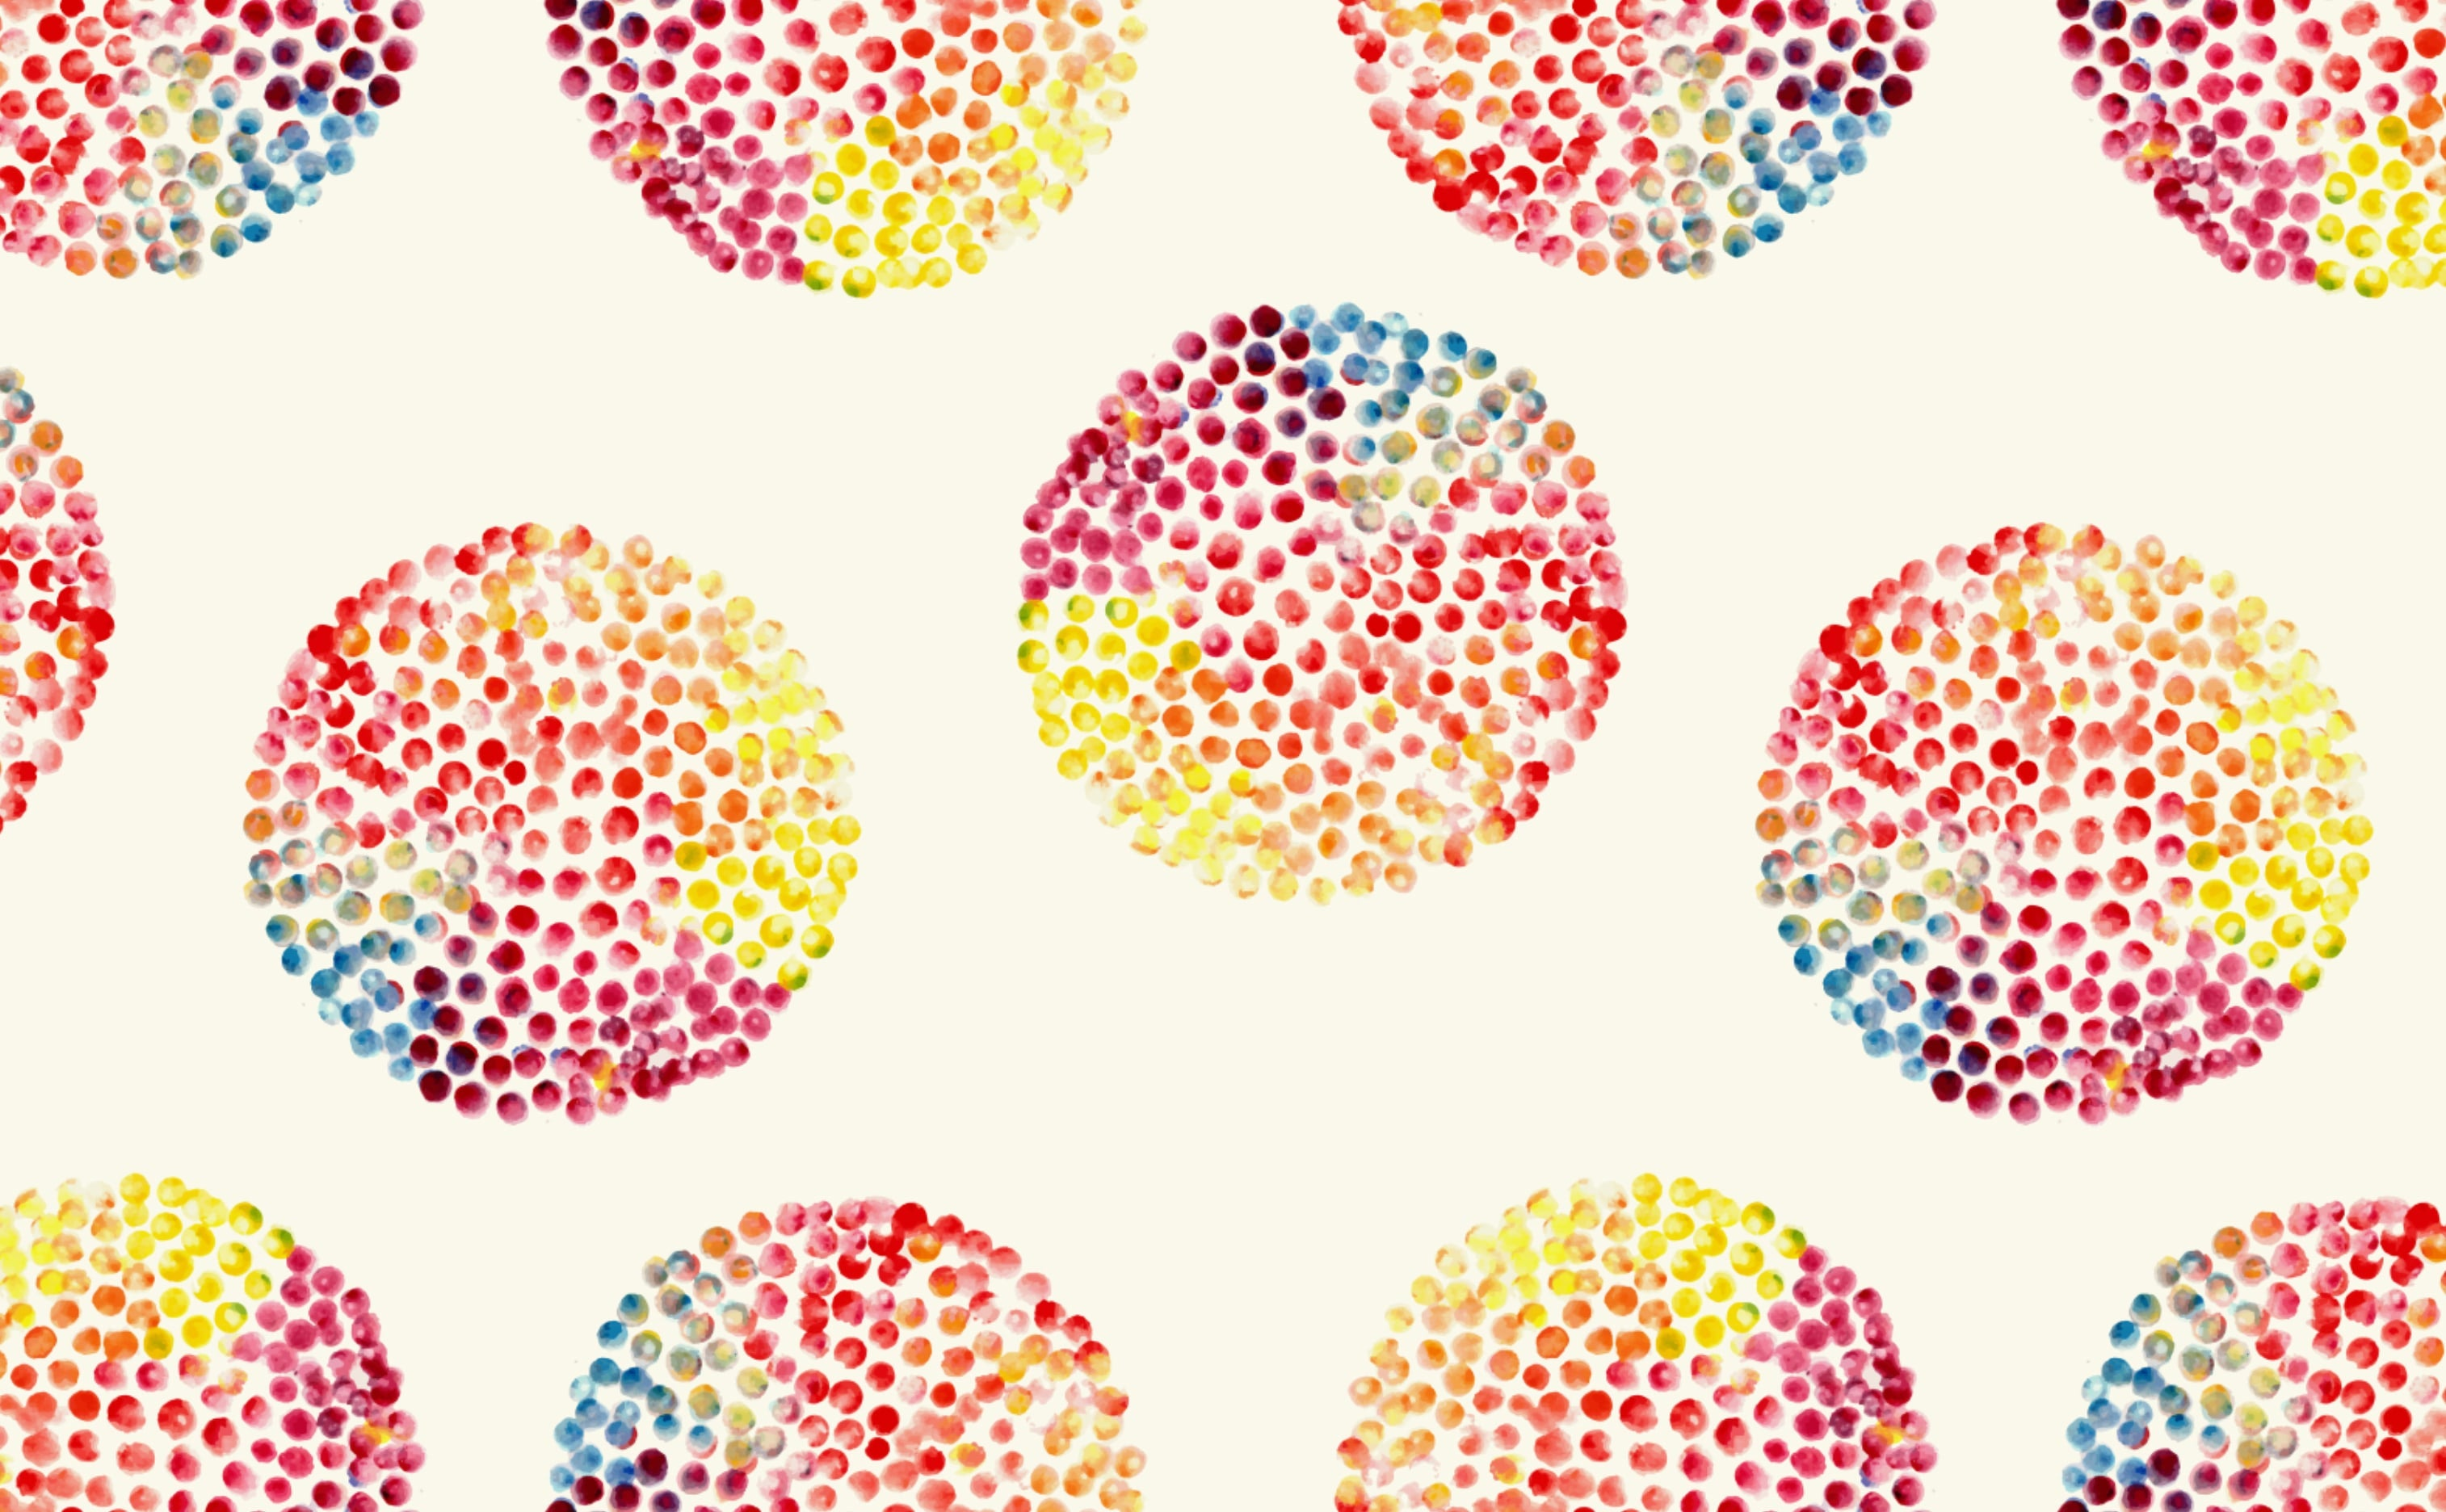 w0176 1s A Taste of the Rainbow Designer Wallpaper Repeating Pattern Sample 1